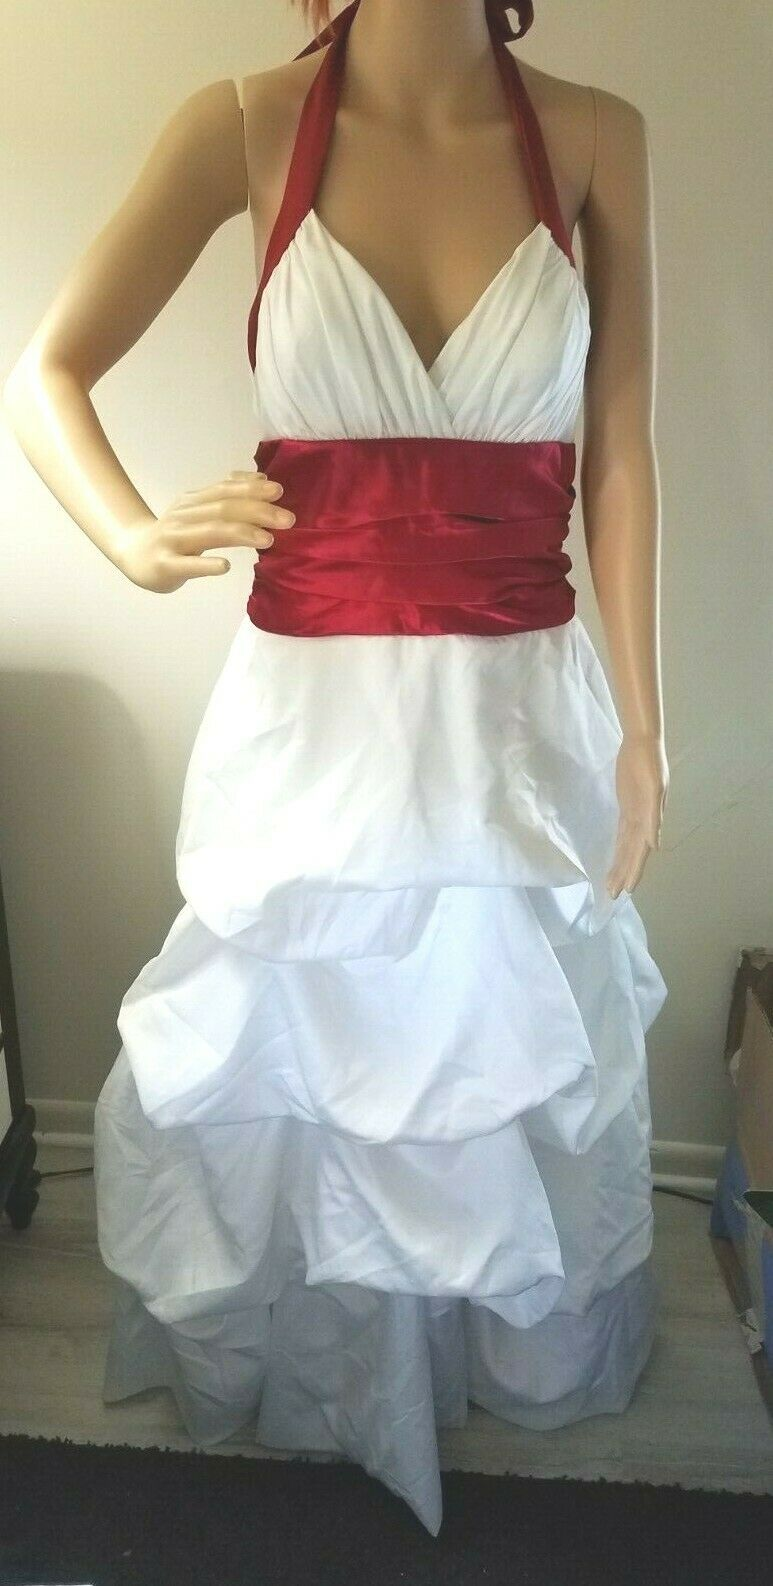 Masquerade Prom Wedding Dress Formal Juniors Size 13/14 White w/Red Trims